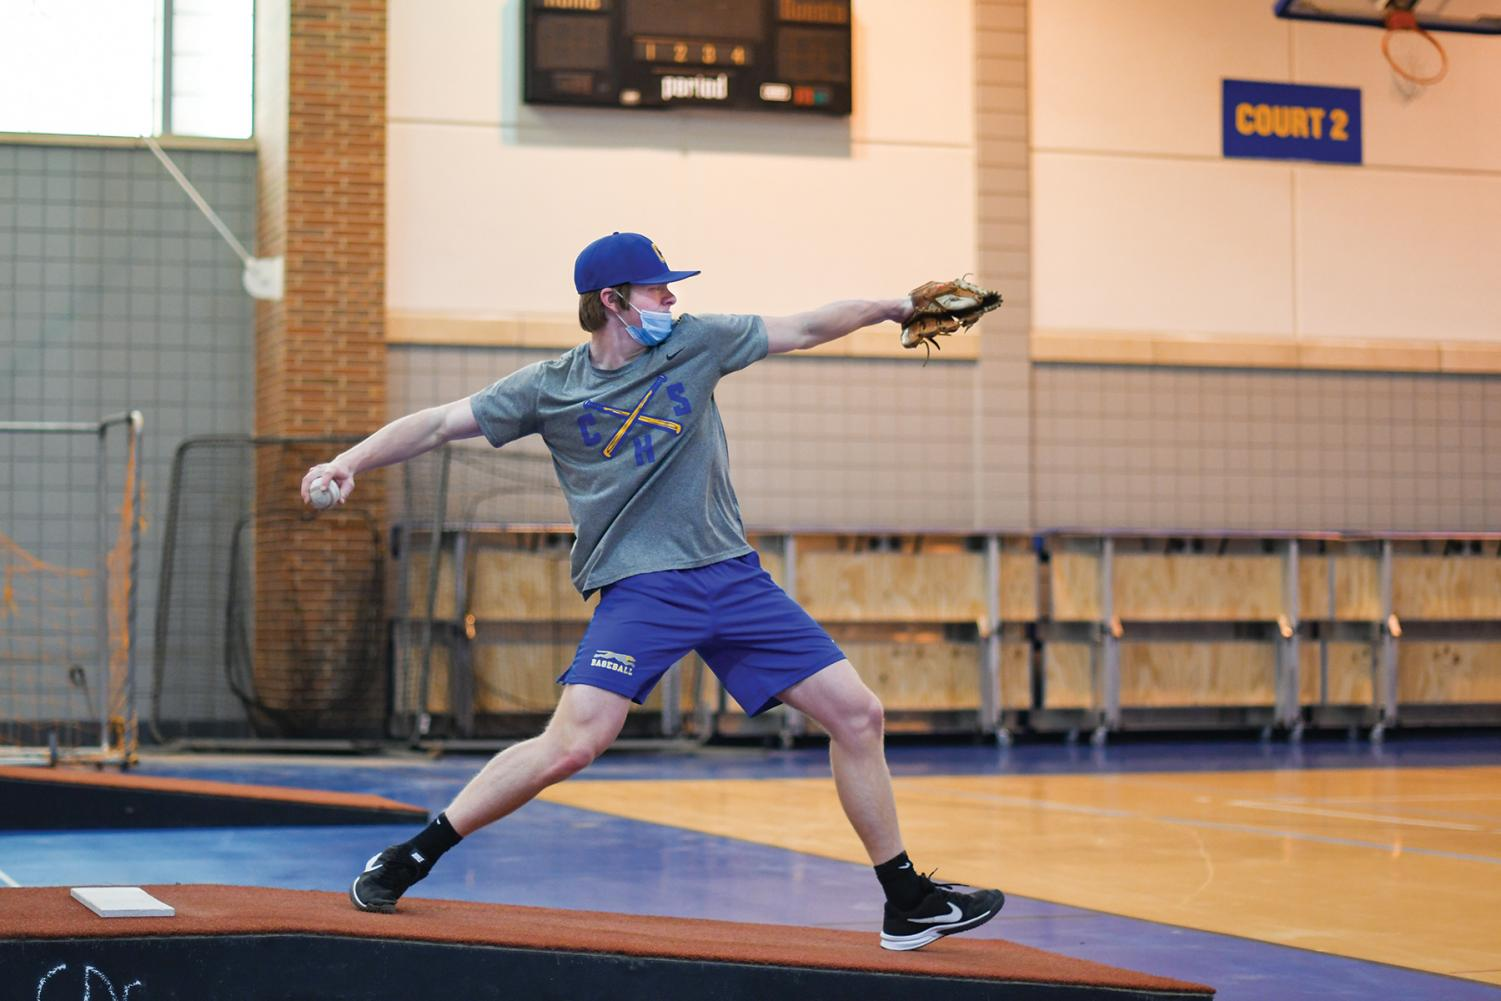 PITCH PERFECT:   Daniel Cunningham, varsity baseball player and junior, practices pitching indoors. Cunningham said practices have been more difficult during the pandemic due to more baseball fields and training facilities being closed.